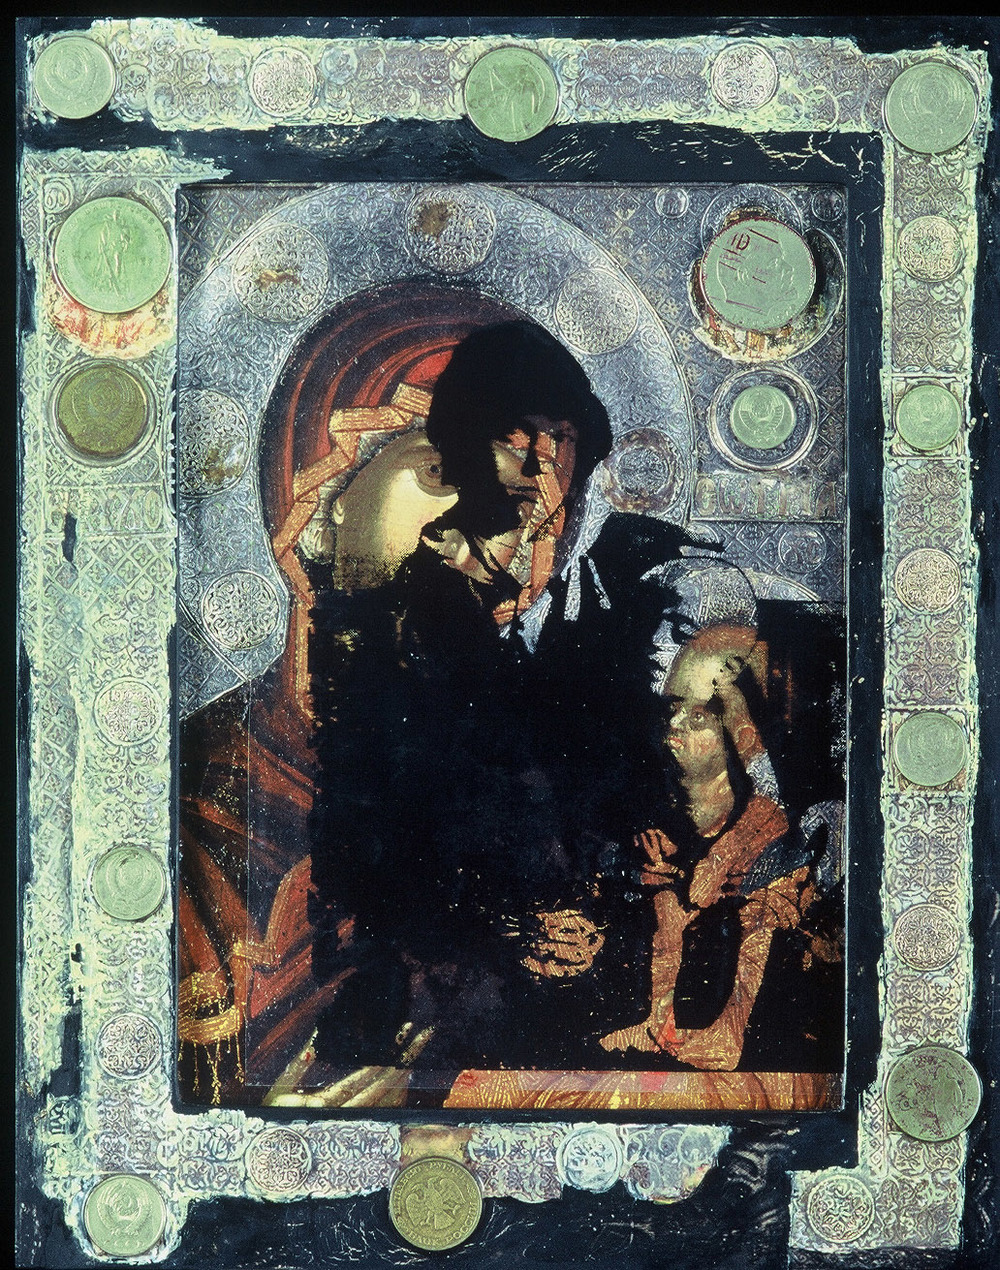 5ac(0) - Another Kind of Icon #2, oil, ruble coins, photocopy, wood, 13x10 in., 1995.jpg